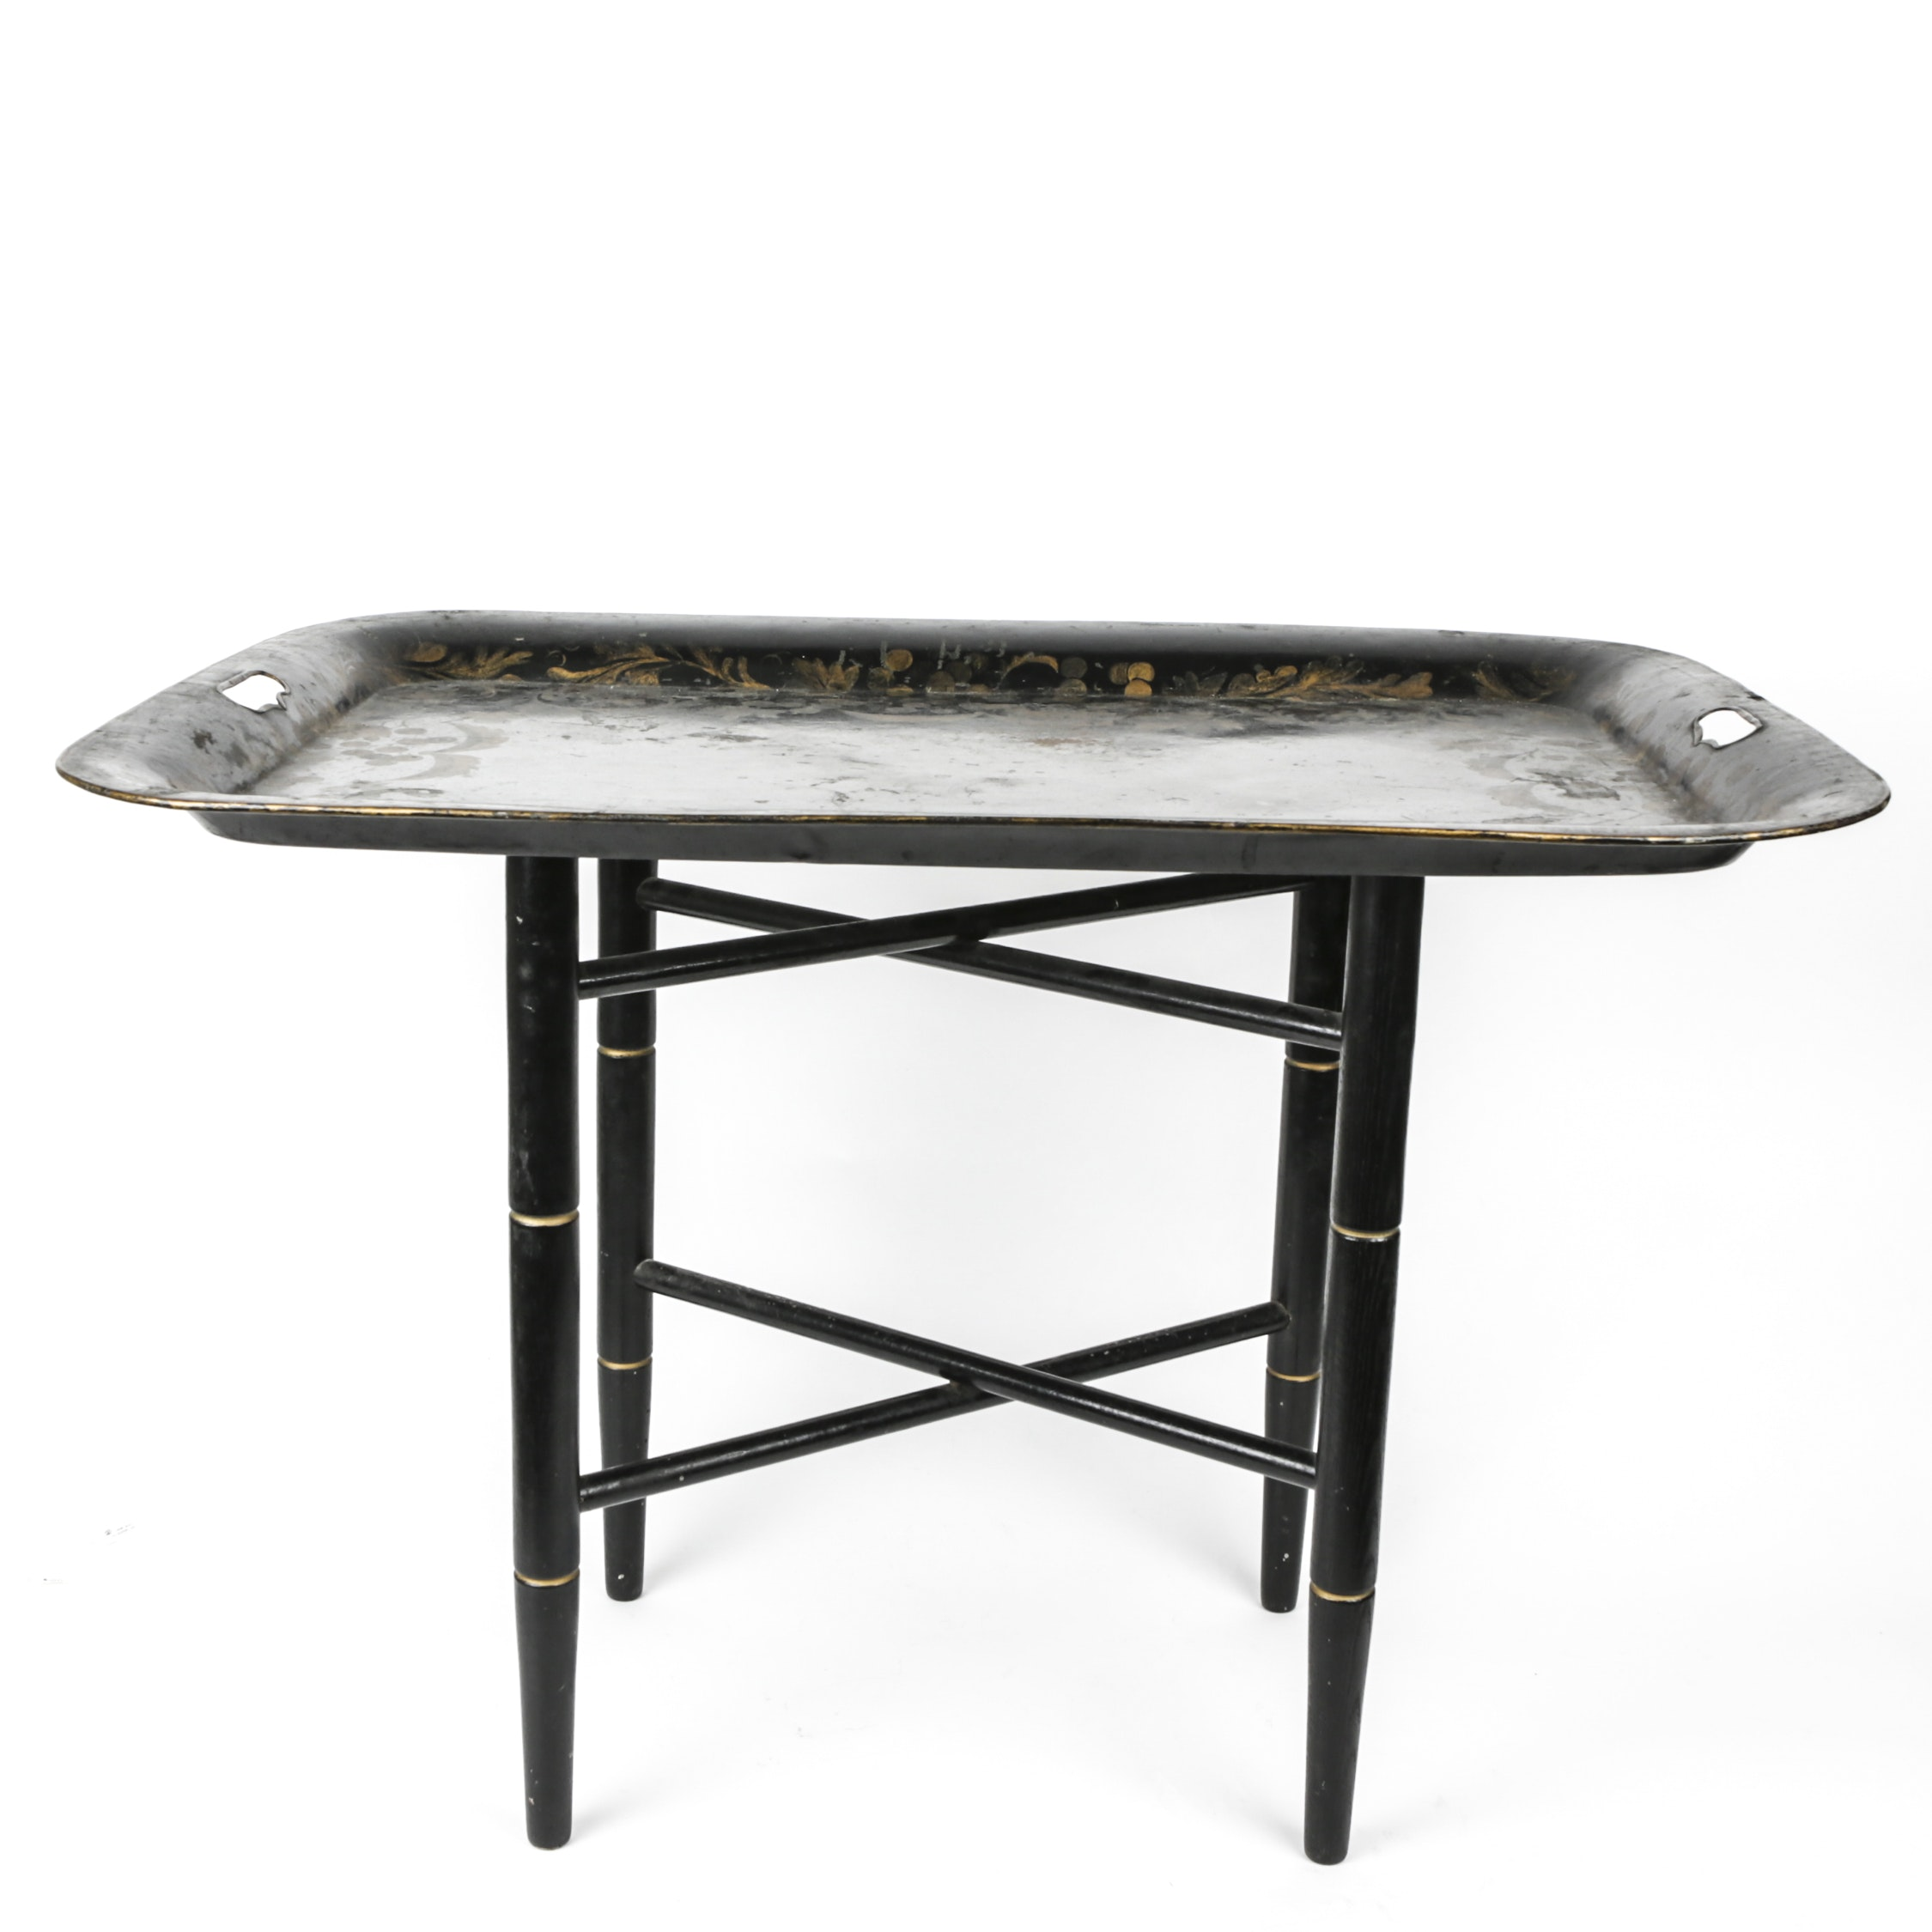 Vintage Metal Tray-Top Table